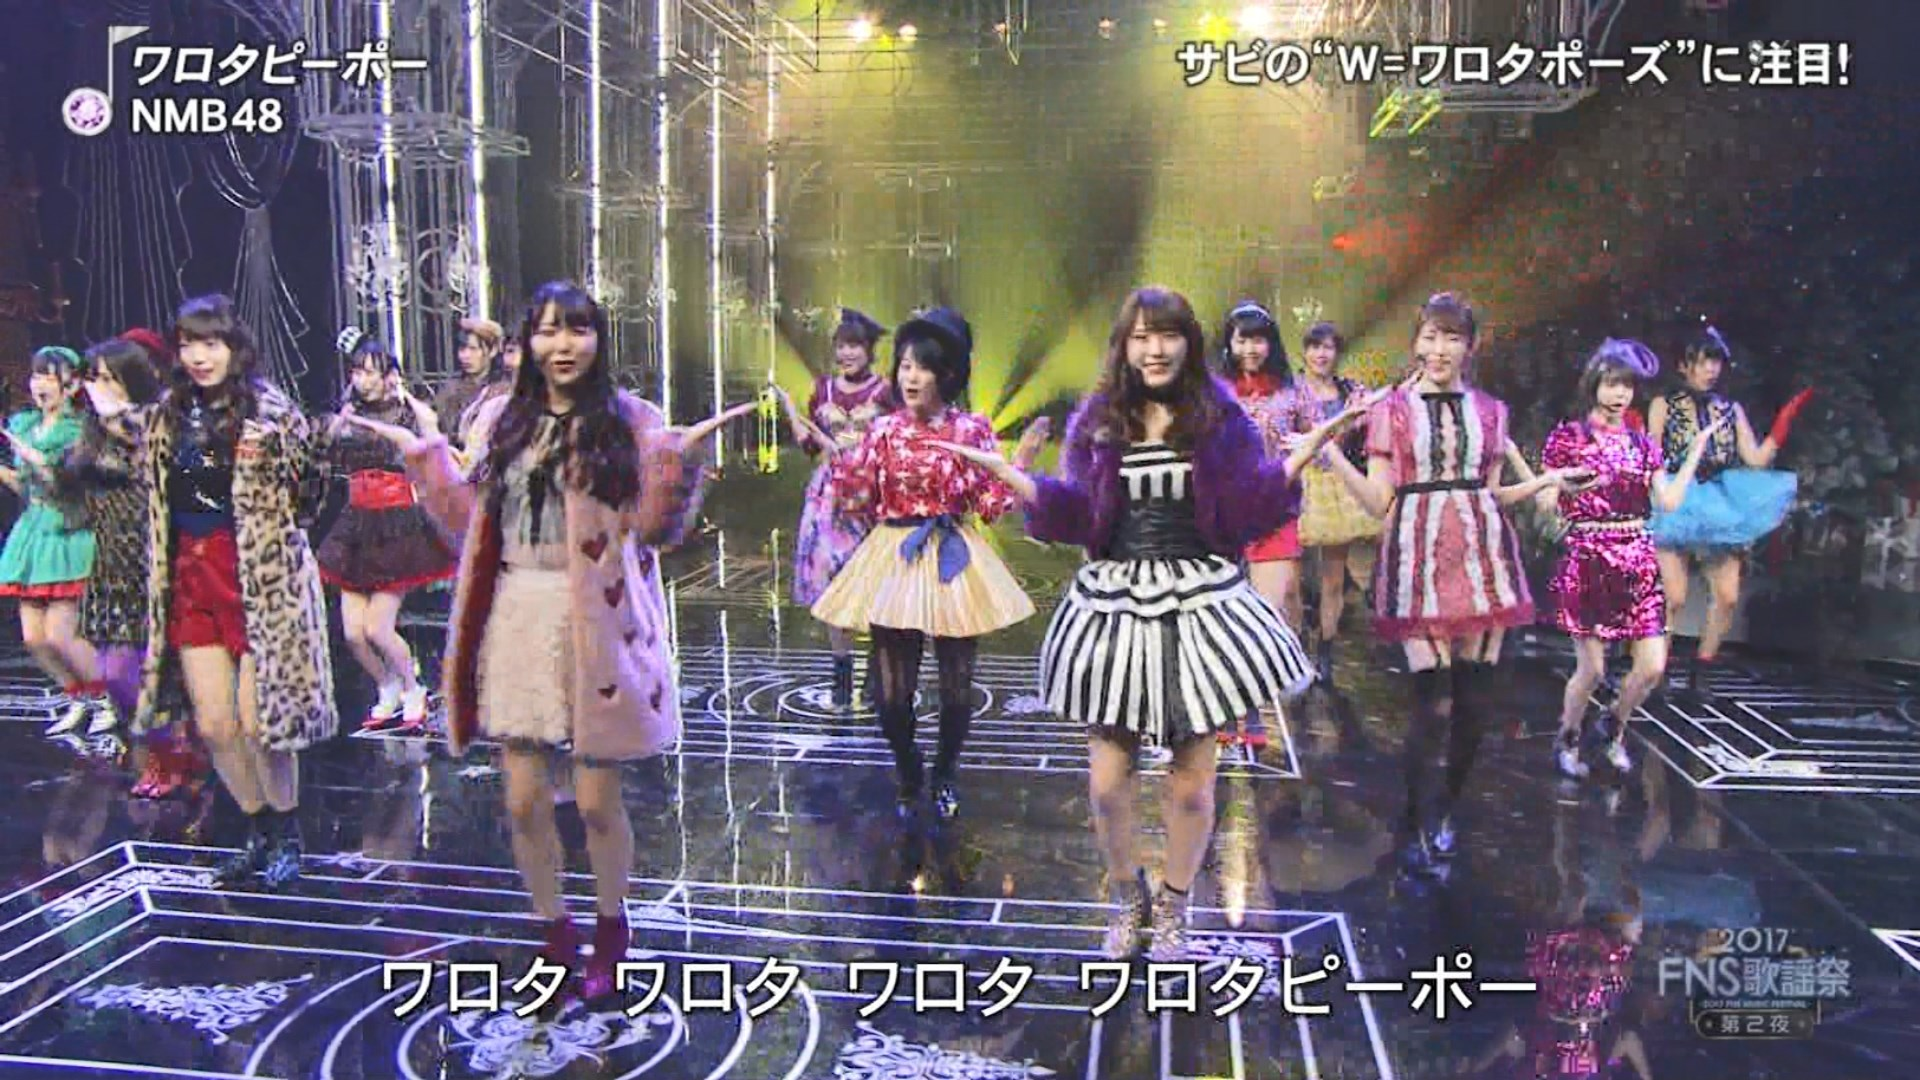 2017FNS歌謡祭第2夜・NMB48ワロタピーポーキャプ-062